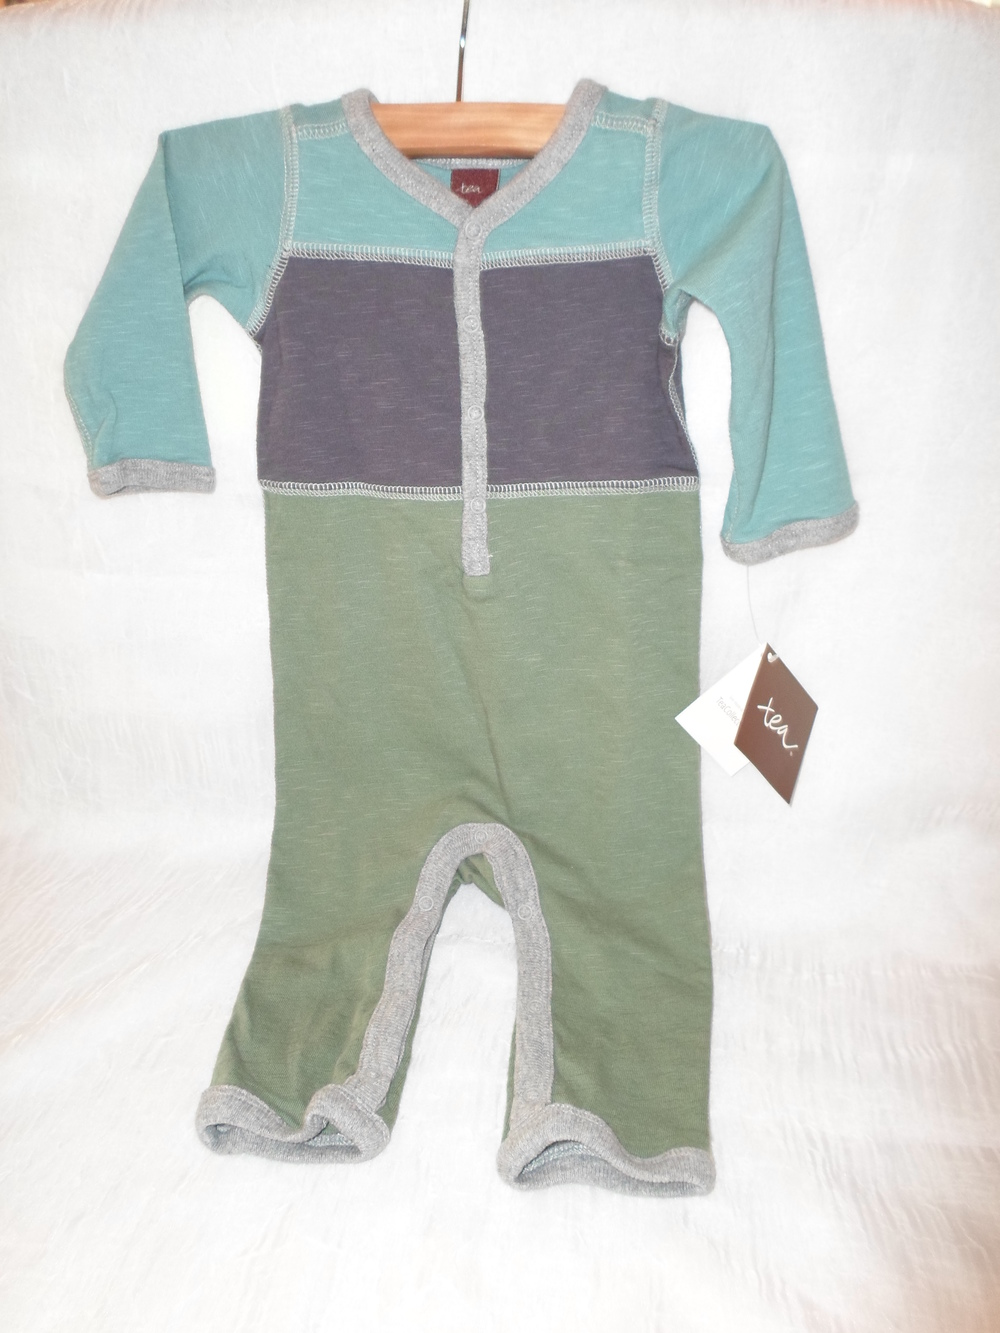 Tea Collection Colorblock Romper in 0-3month $35     Purchased